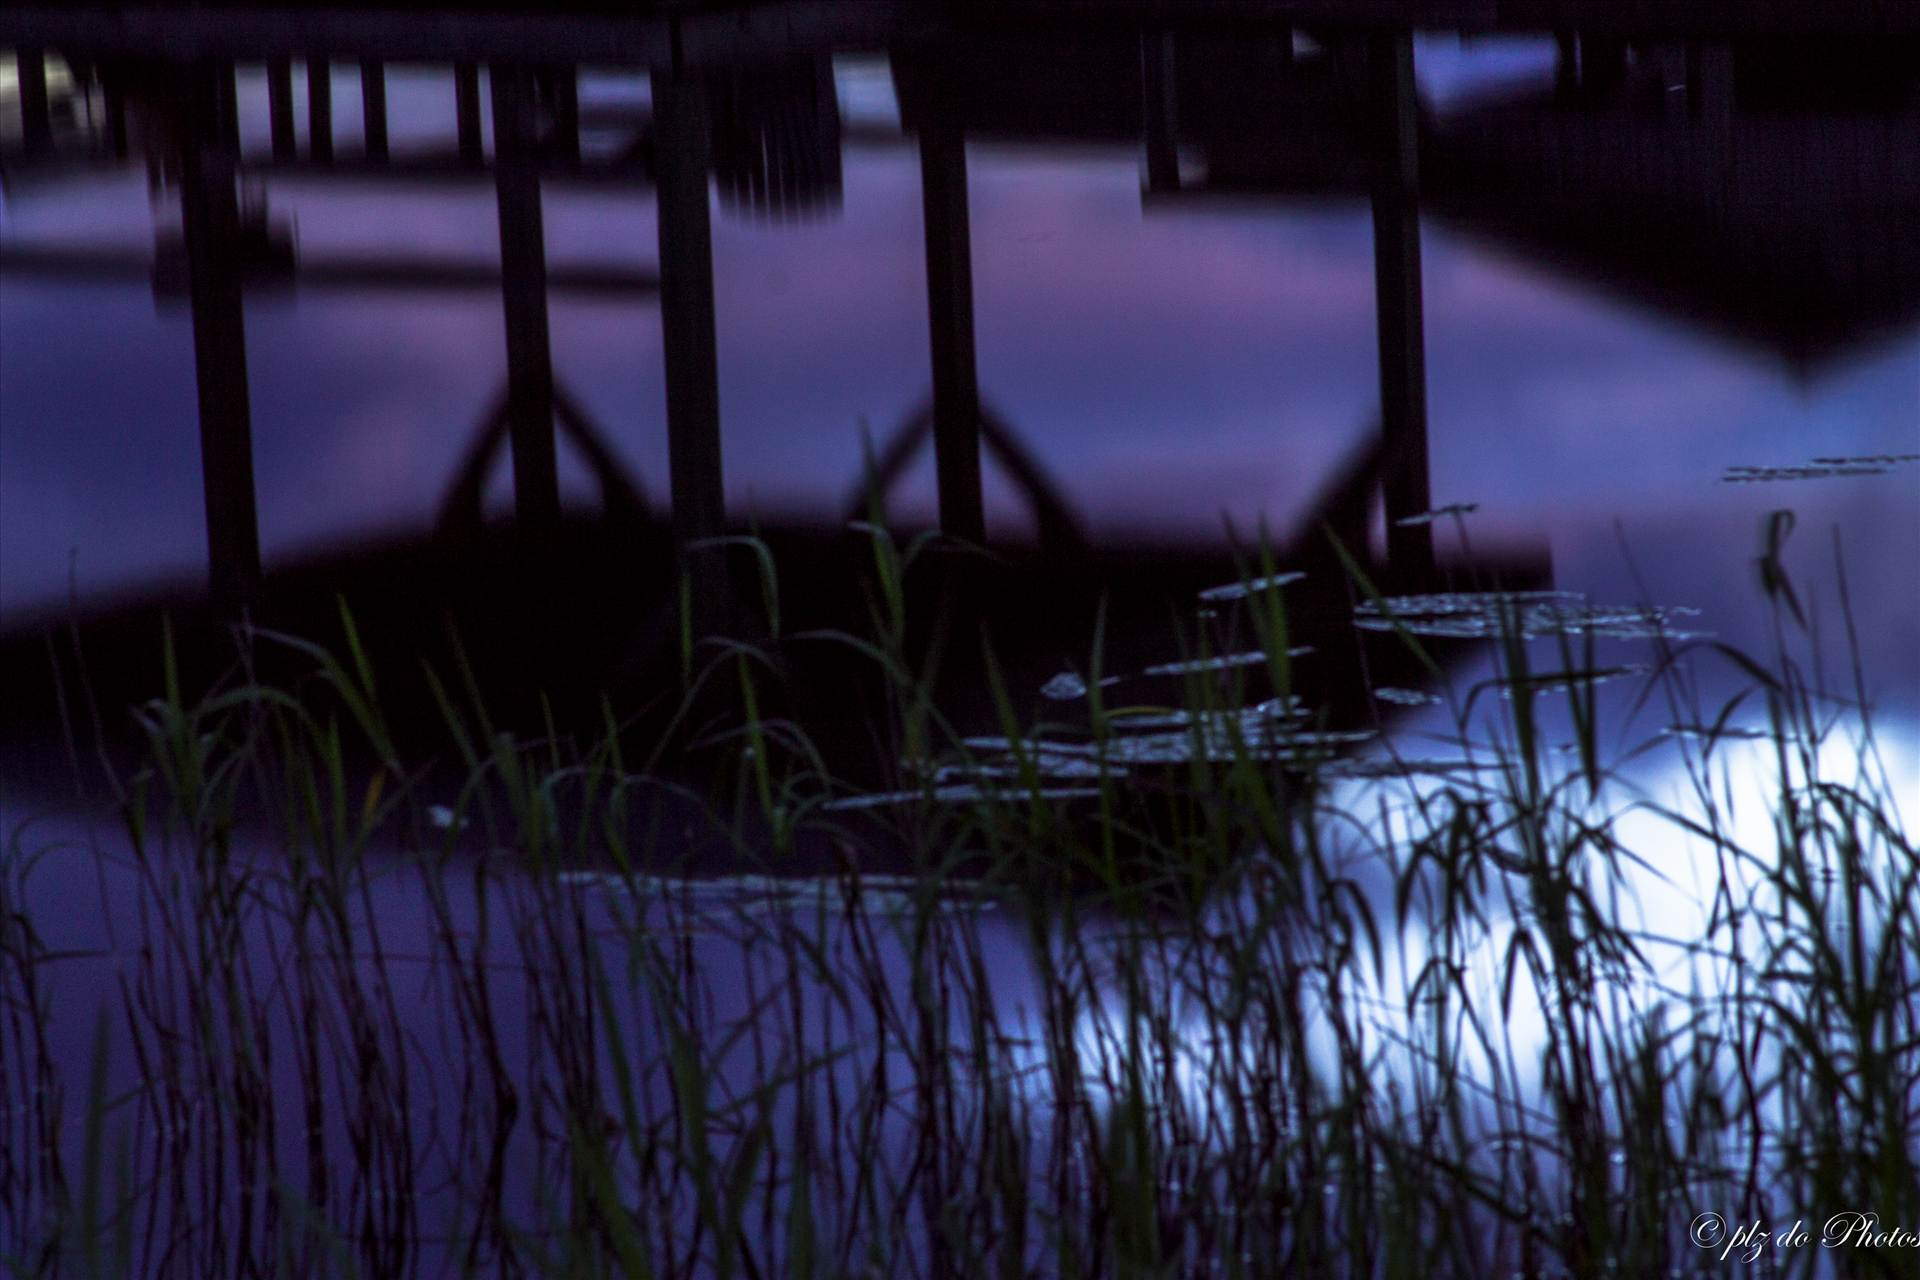 Purple Haze - Reflection of late sunset in June at Lake Waccamaw, NC by Patricia Zyzyk